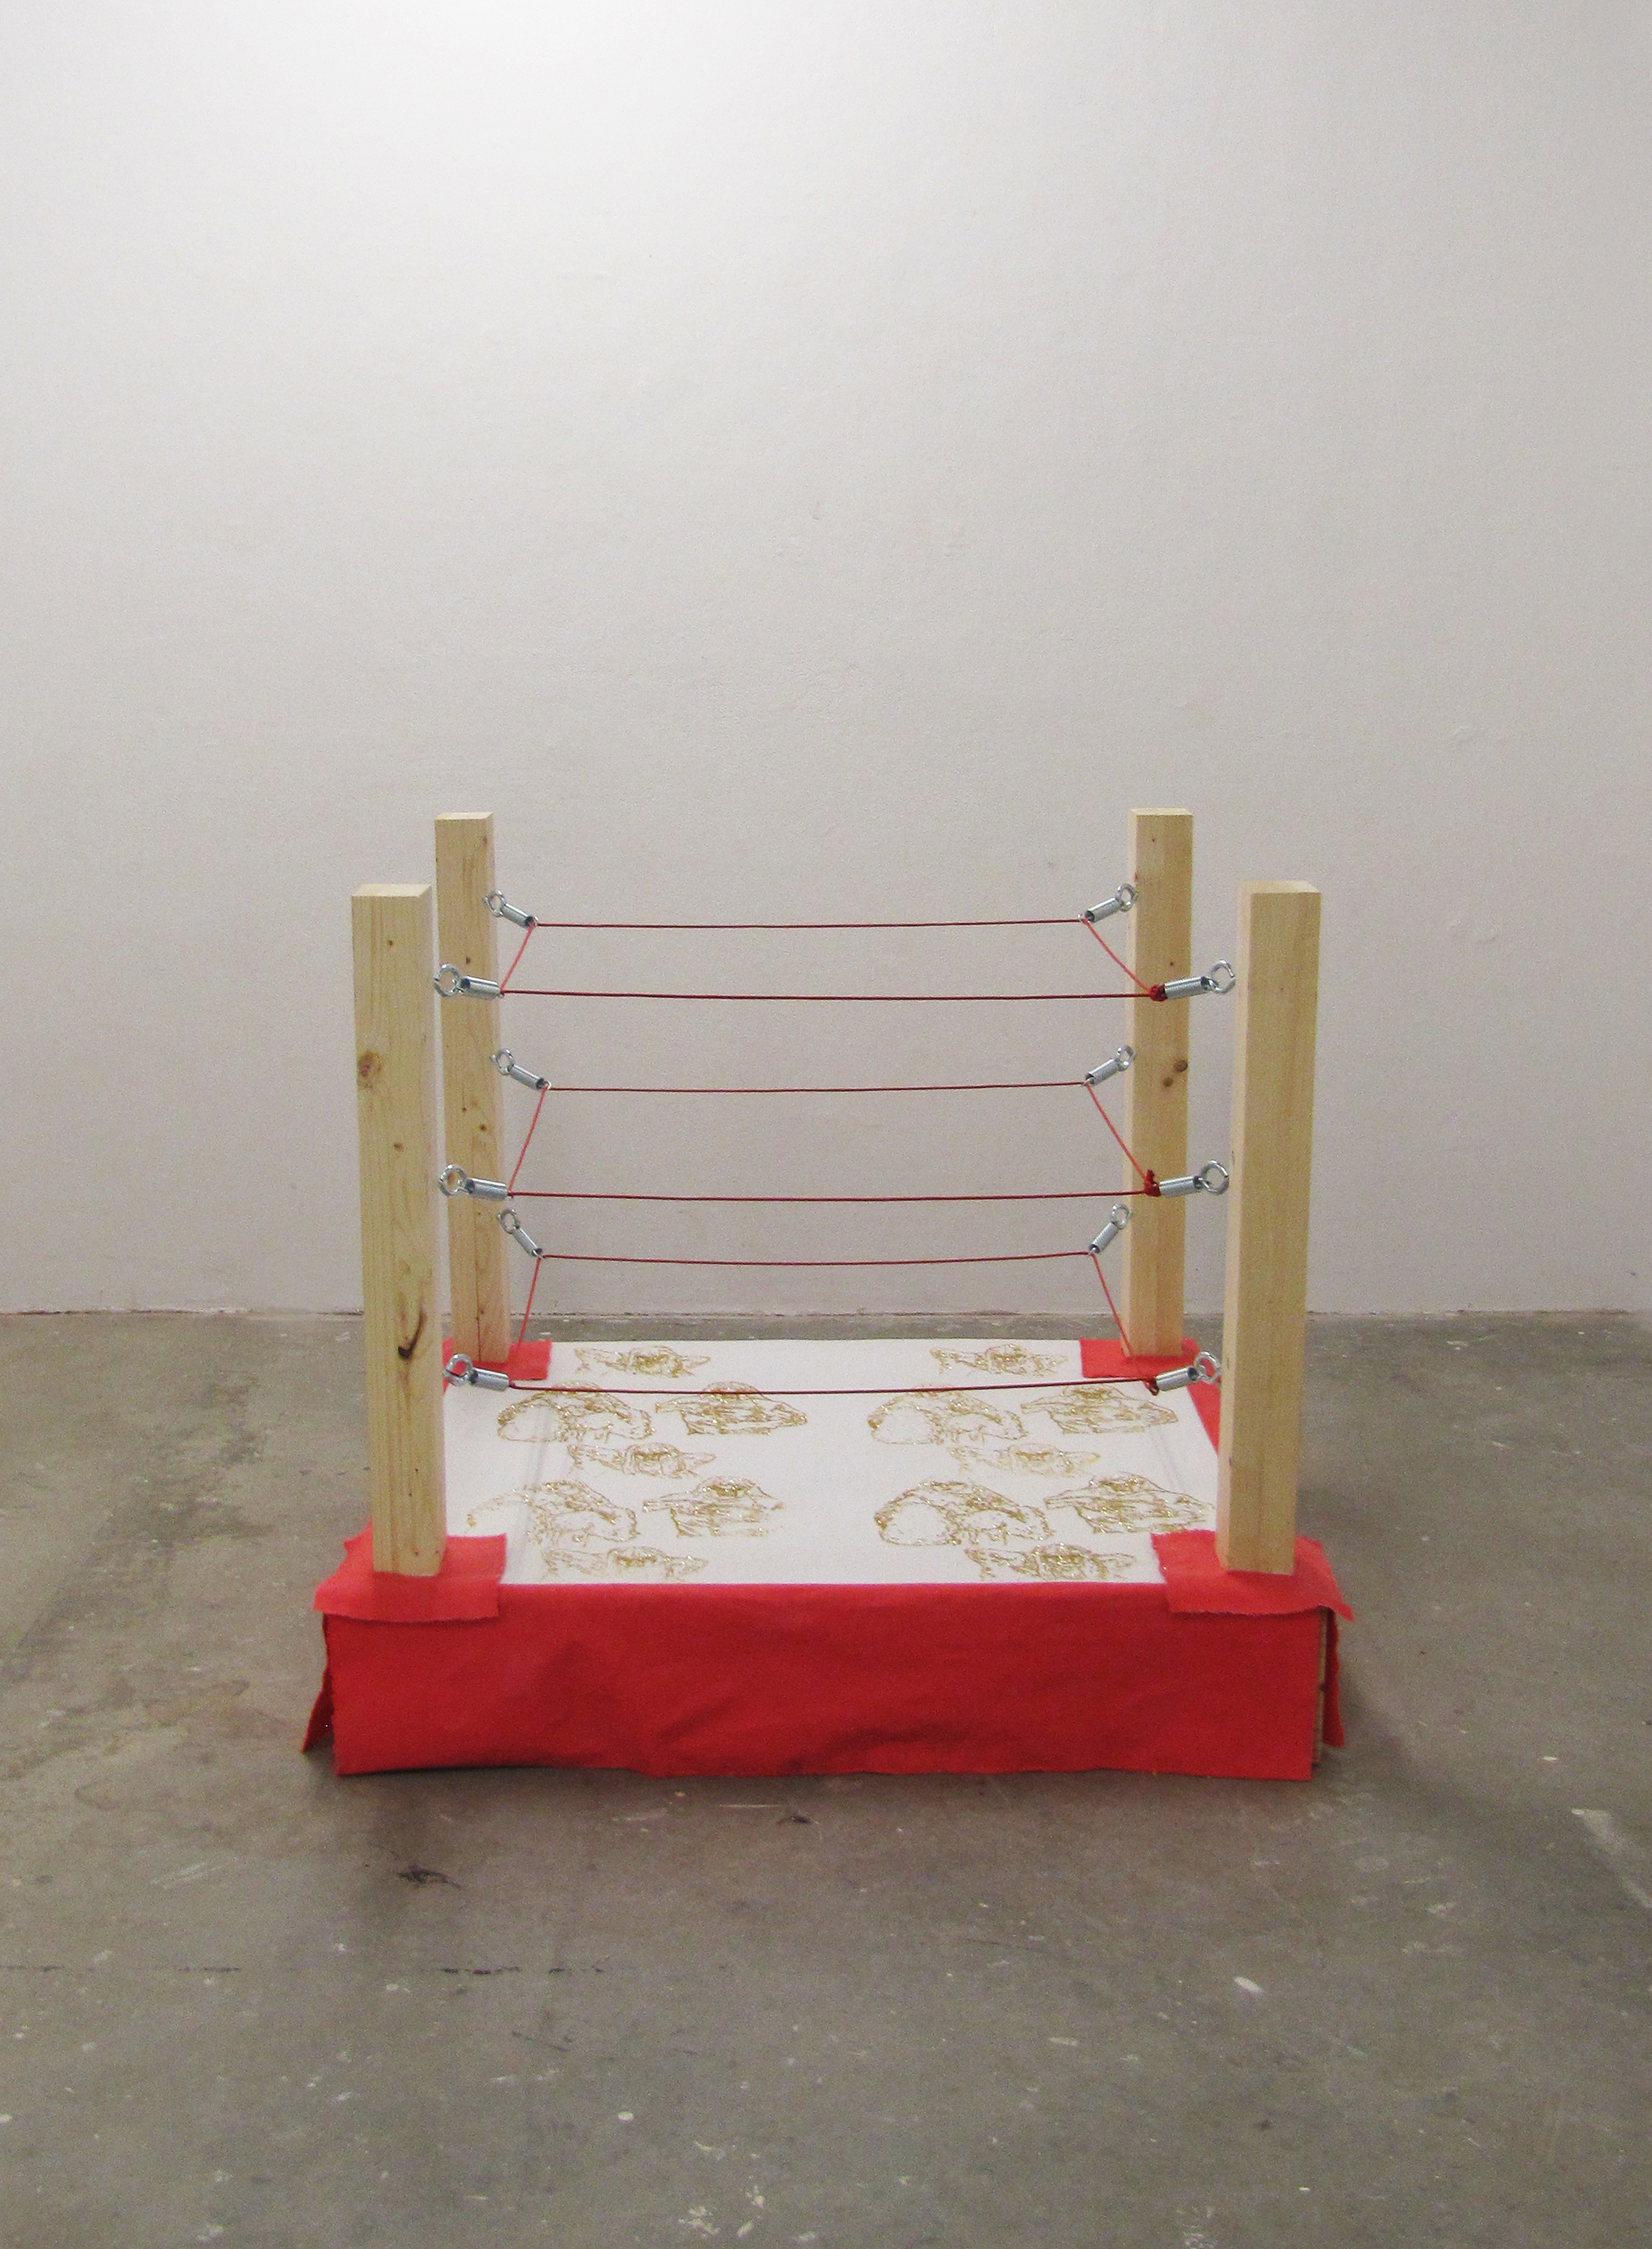 BABY'S FIRST WRESTLING RING - rachel mcgovern